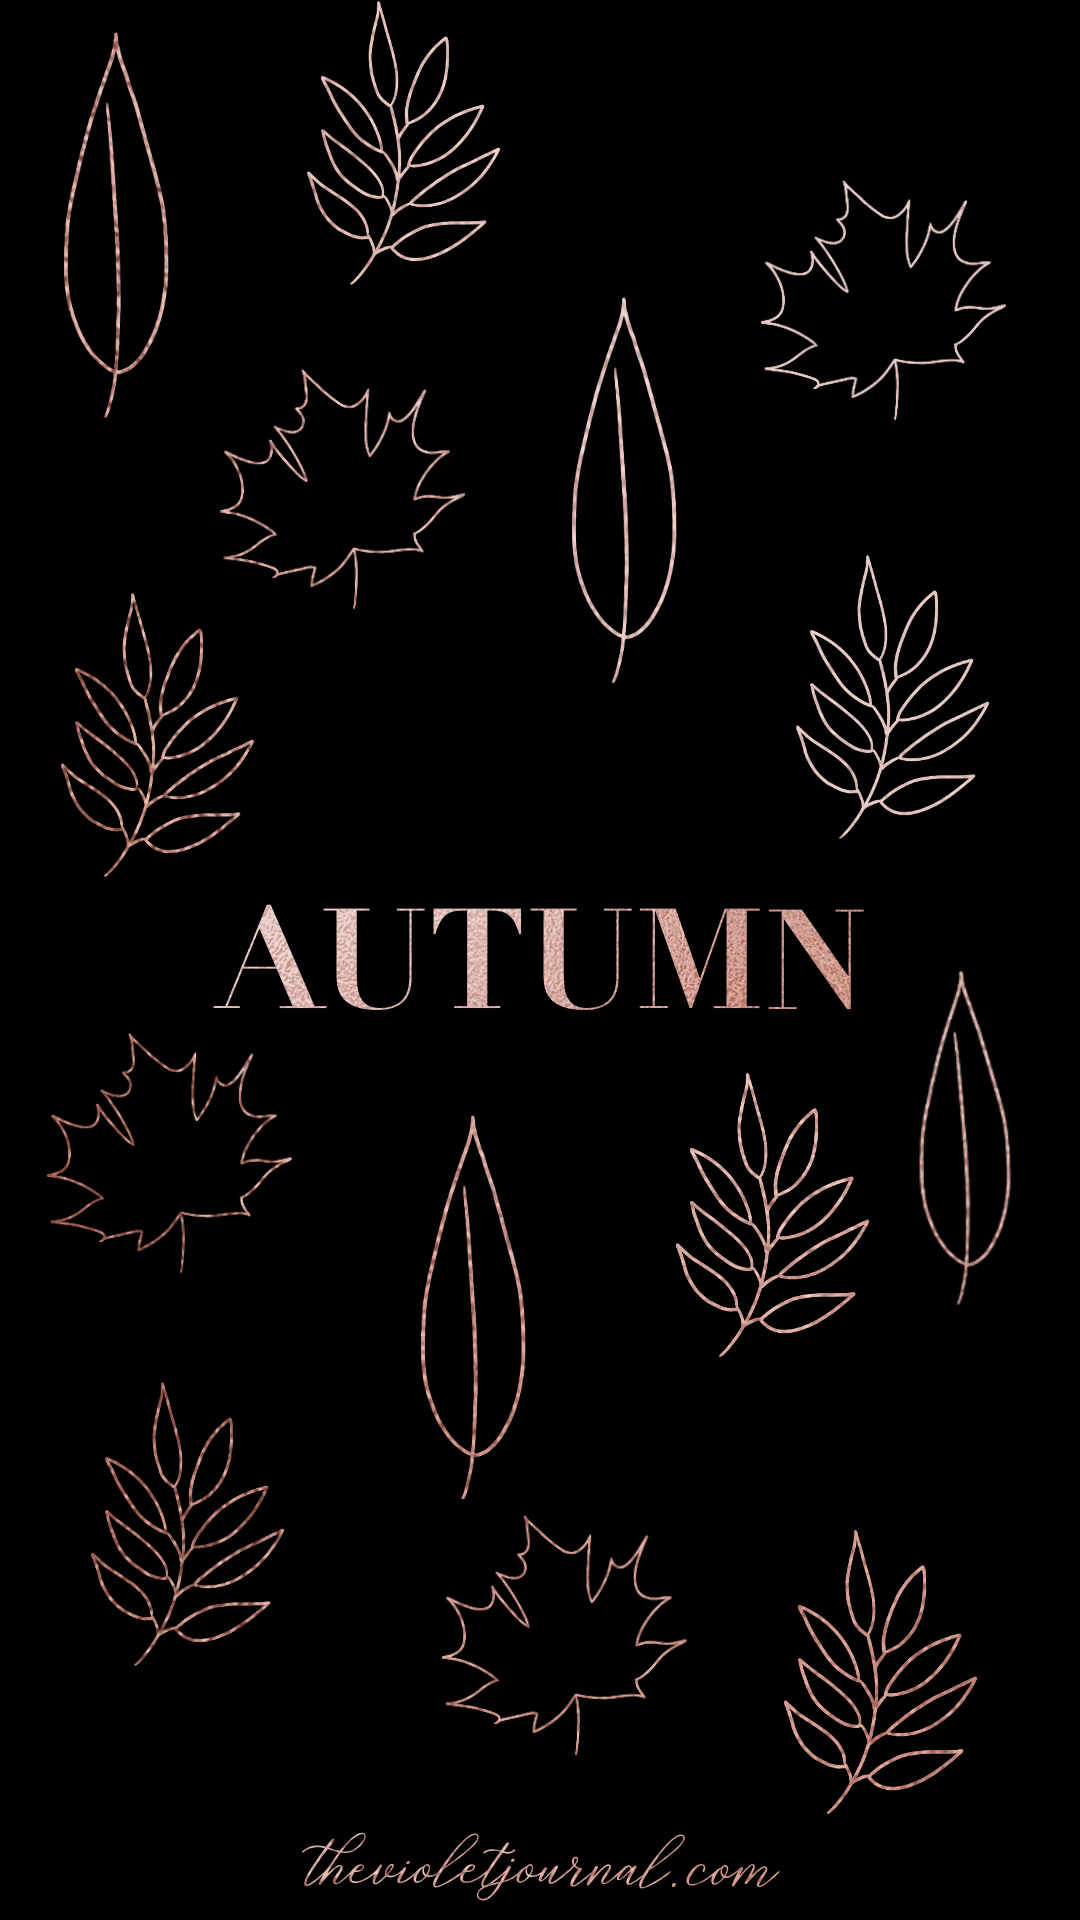 chic iphone wallpaper for autumn